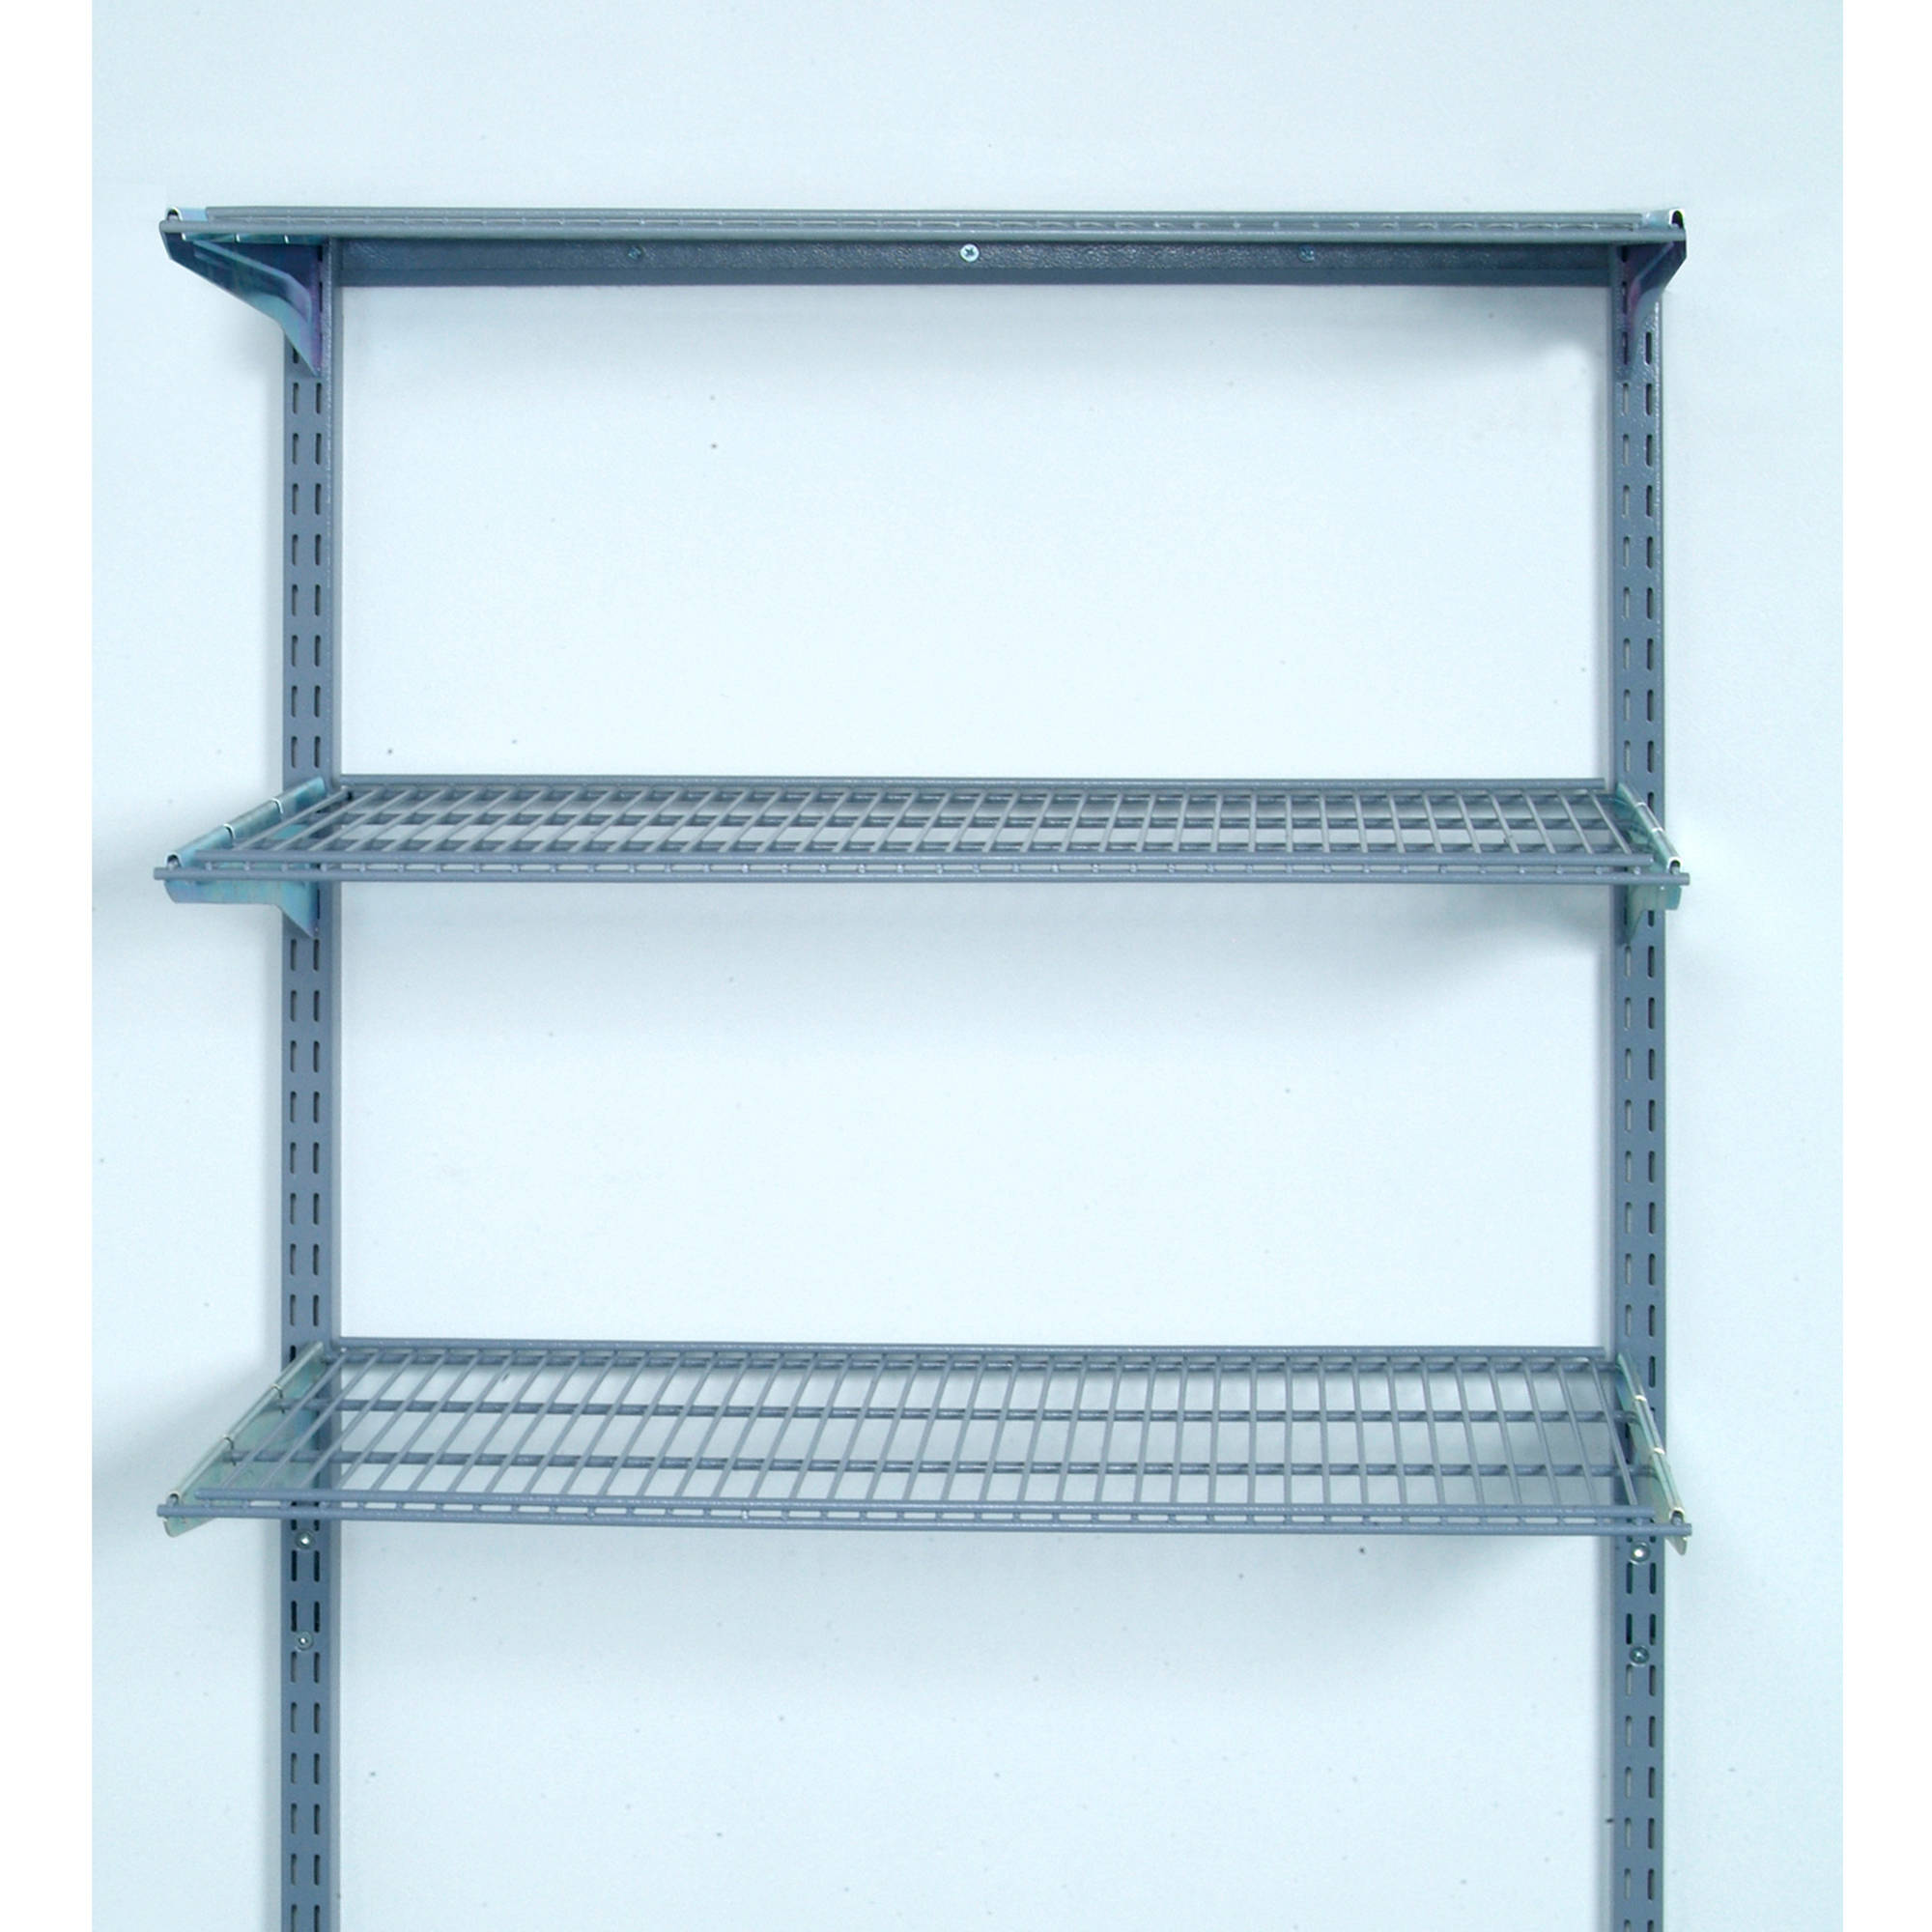 """Storability 33""""L x 31.5""""H Wall Mount Shelving Unit with 3 Steel Wire Shelves & Mounting Hardware"""